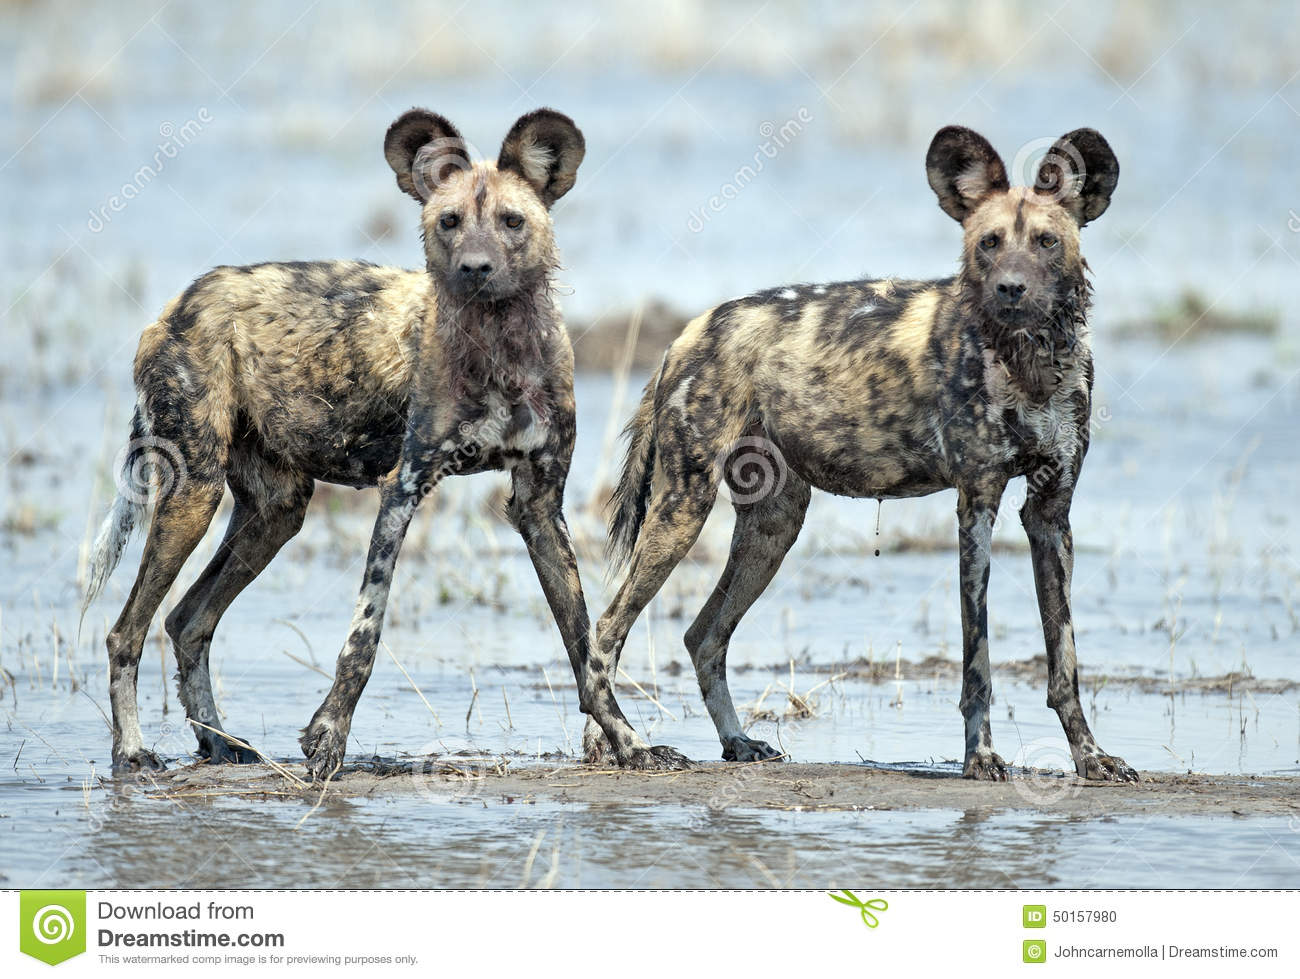 Cães selvagens africanos